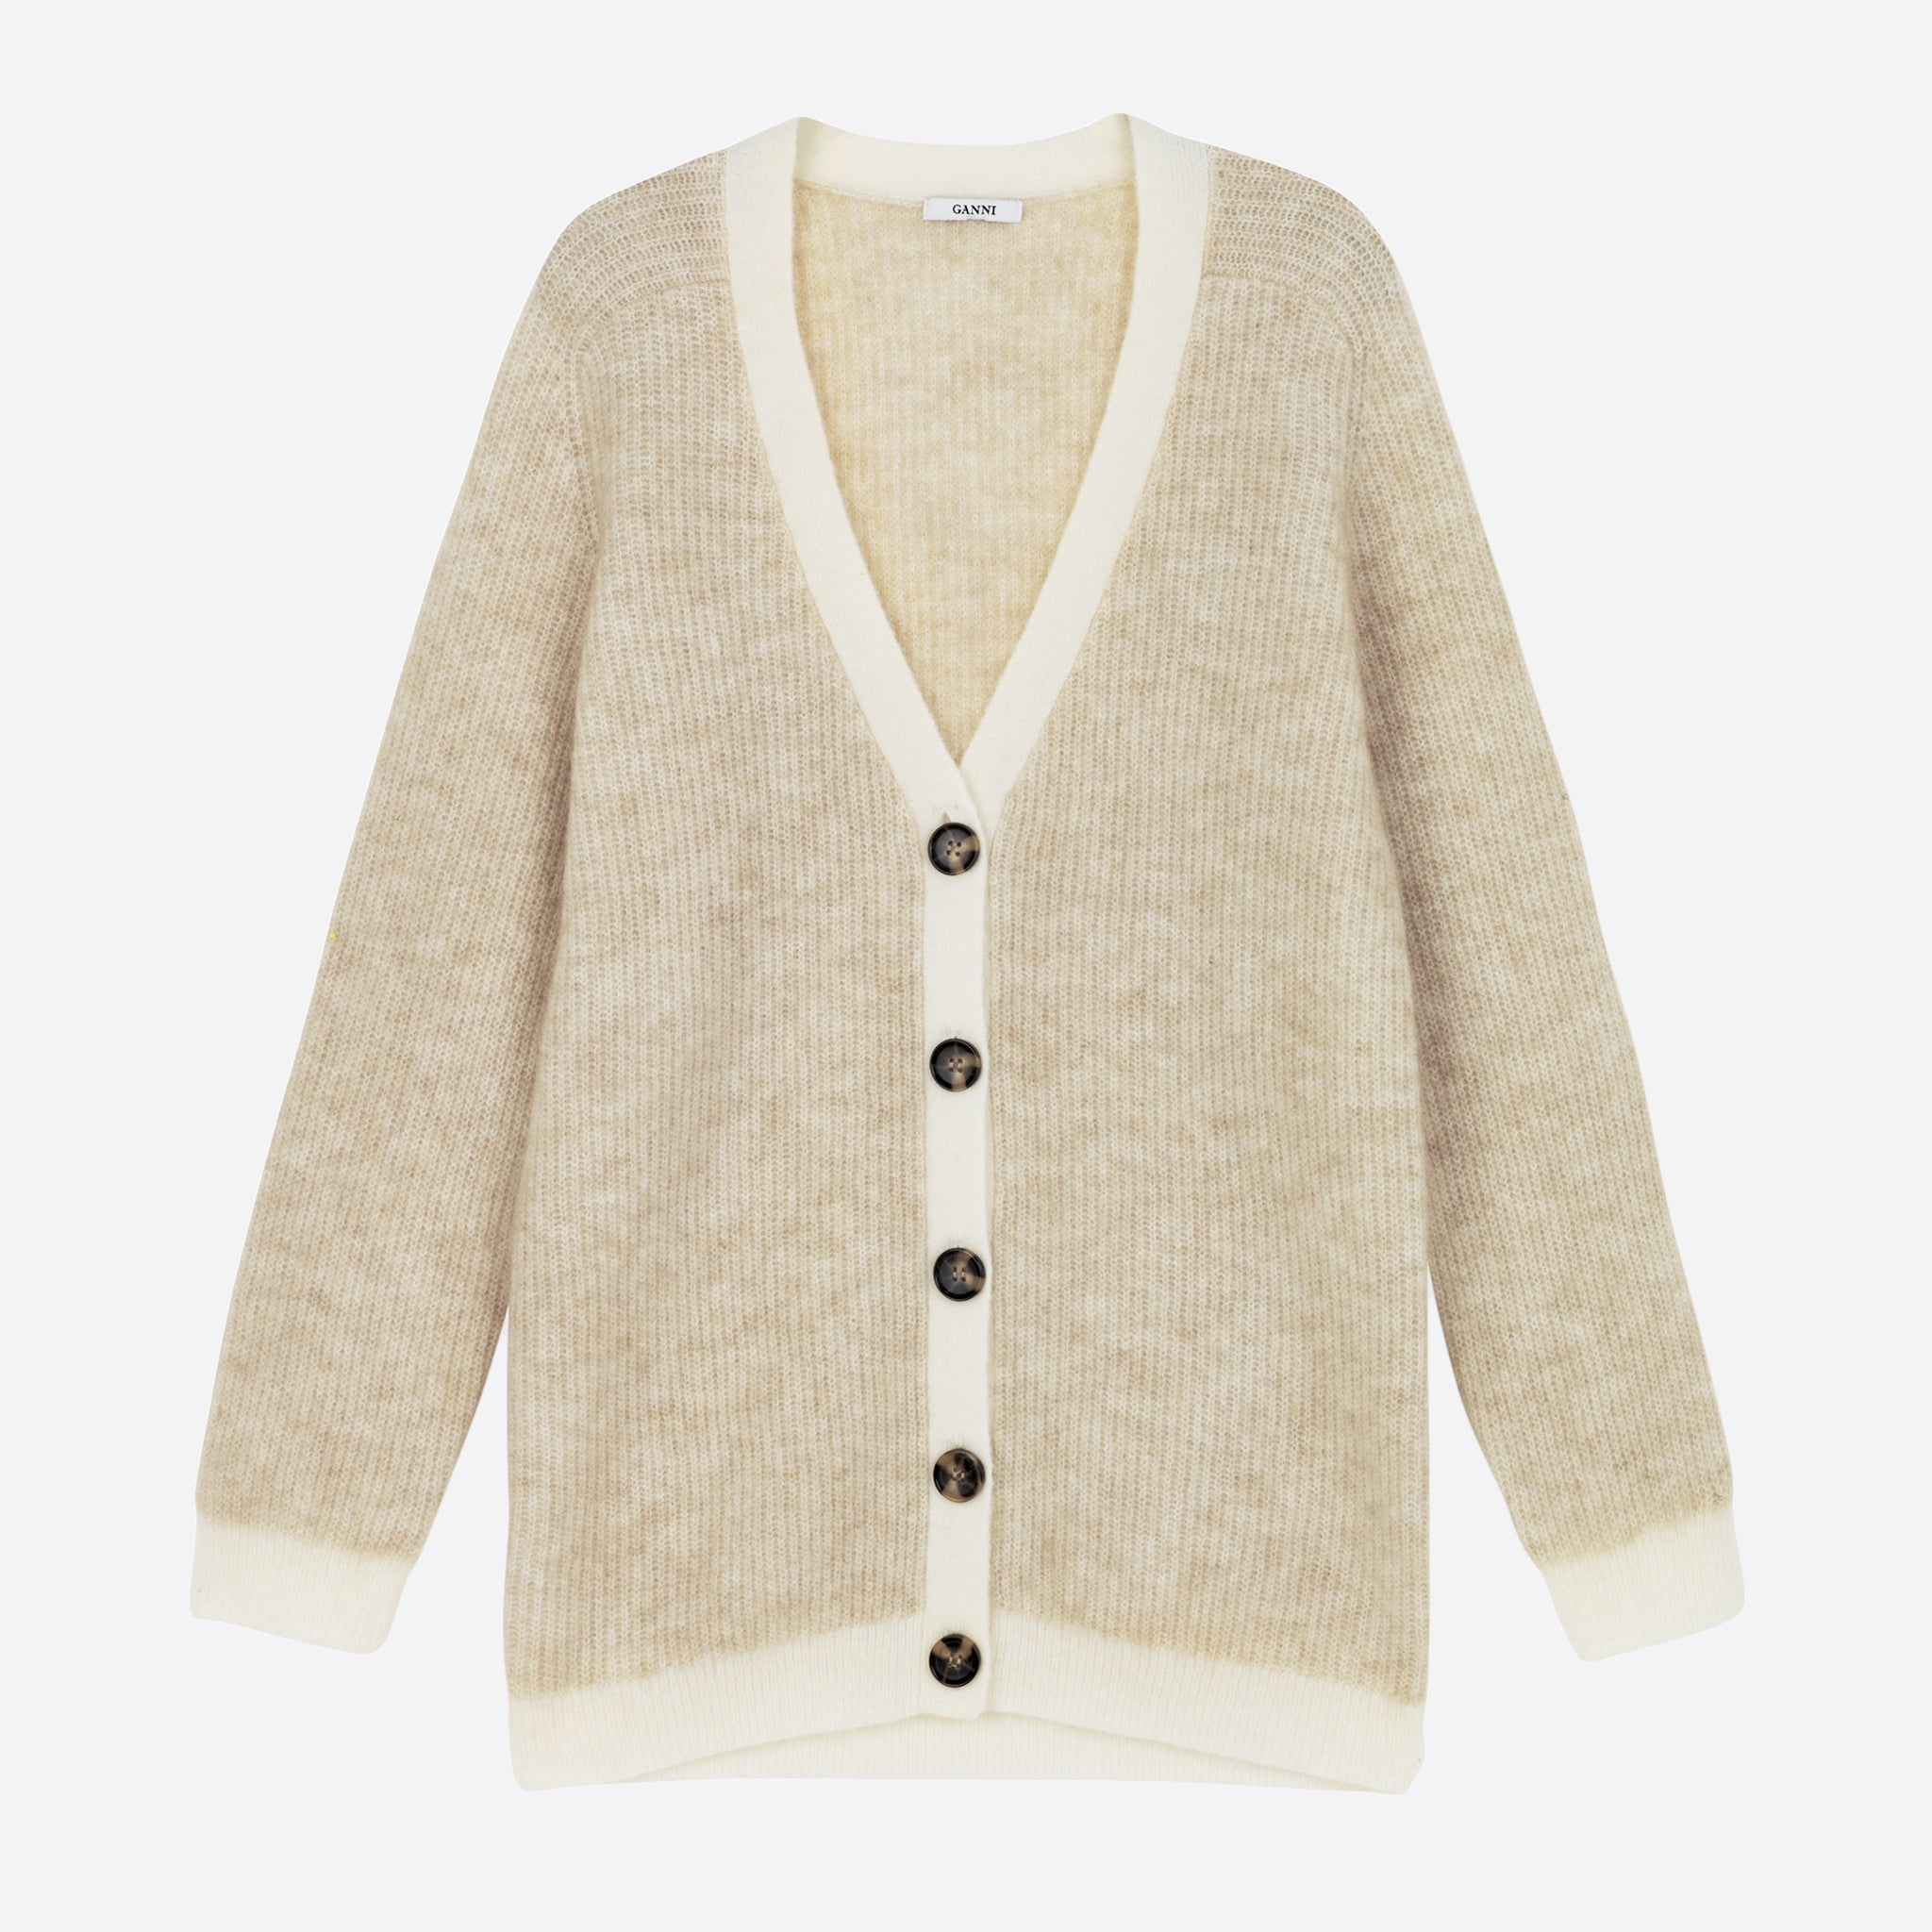 Ganni Soft Wool Knit Cardigan in Tapioca